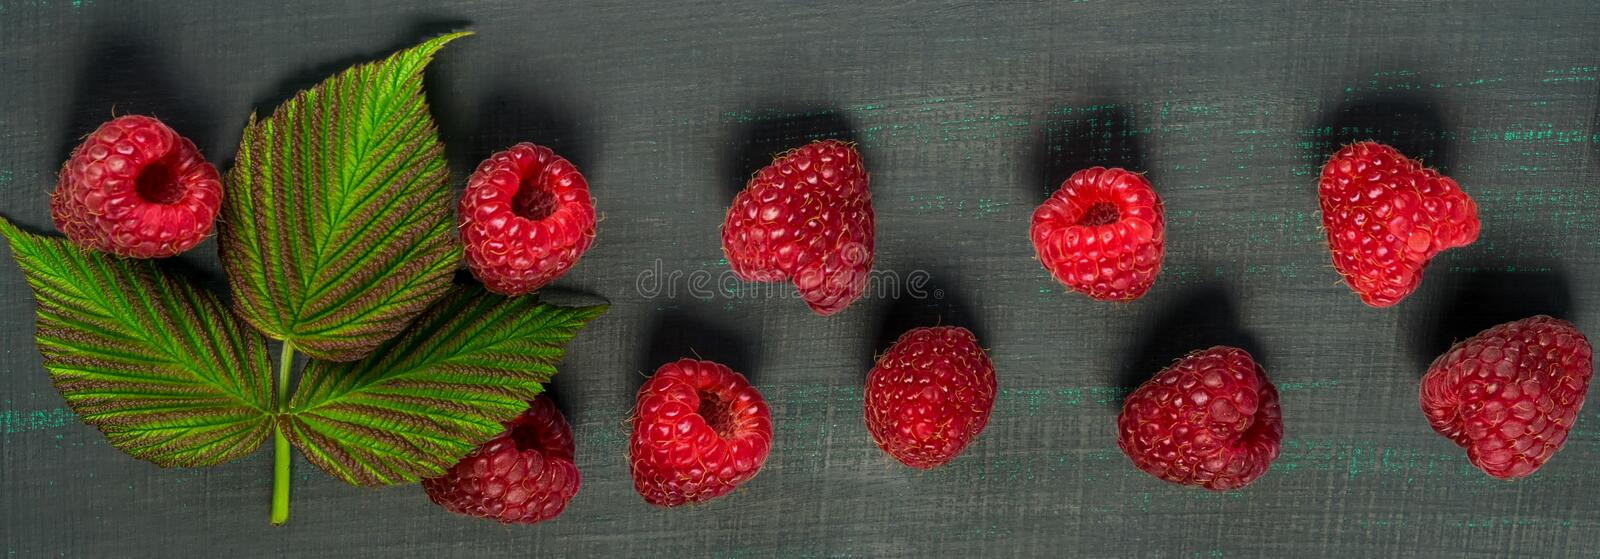 Berries of red raspberries with a green twig lie in a row on a long, black background. Berries of red raspberries with a green twig lie in a row on a long stock photography